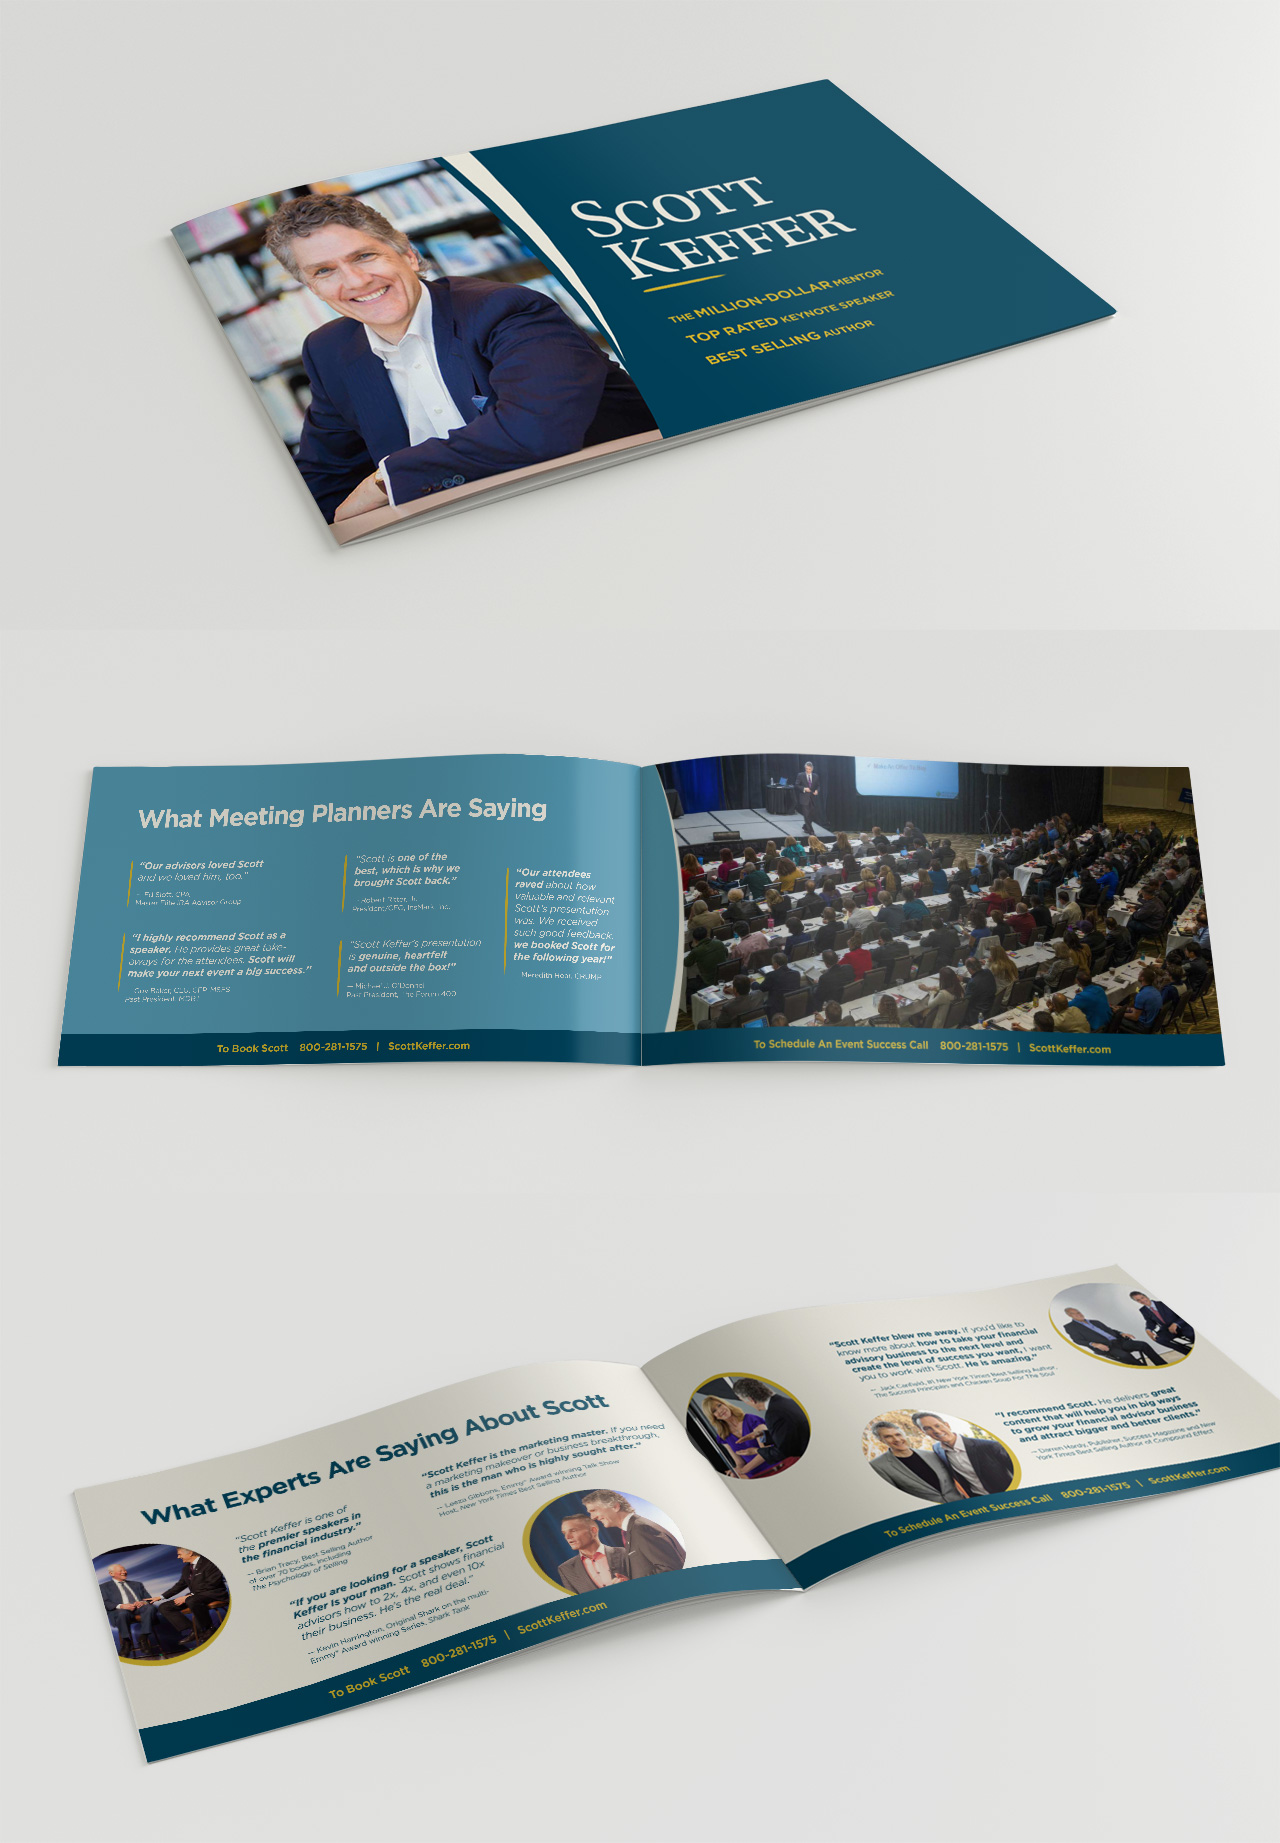 Scott Keffer speaking brochure by Kettle Fire Creative event collateral Event CollateralPublic Speaker + Coach sk booklet mockup